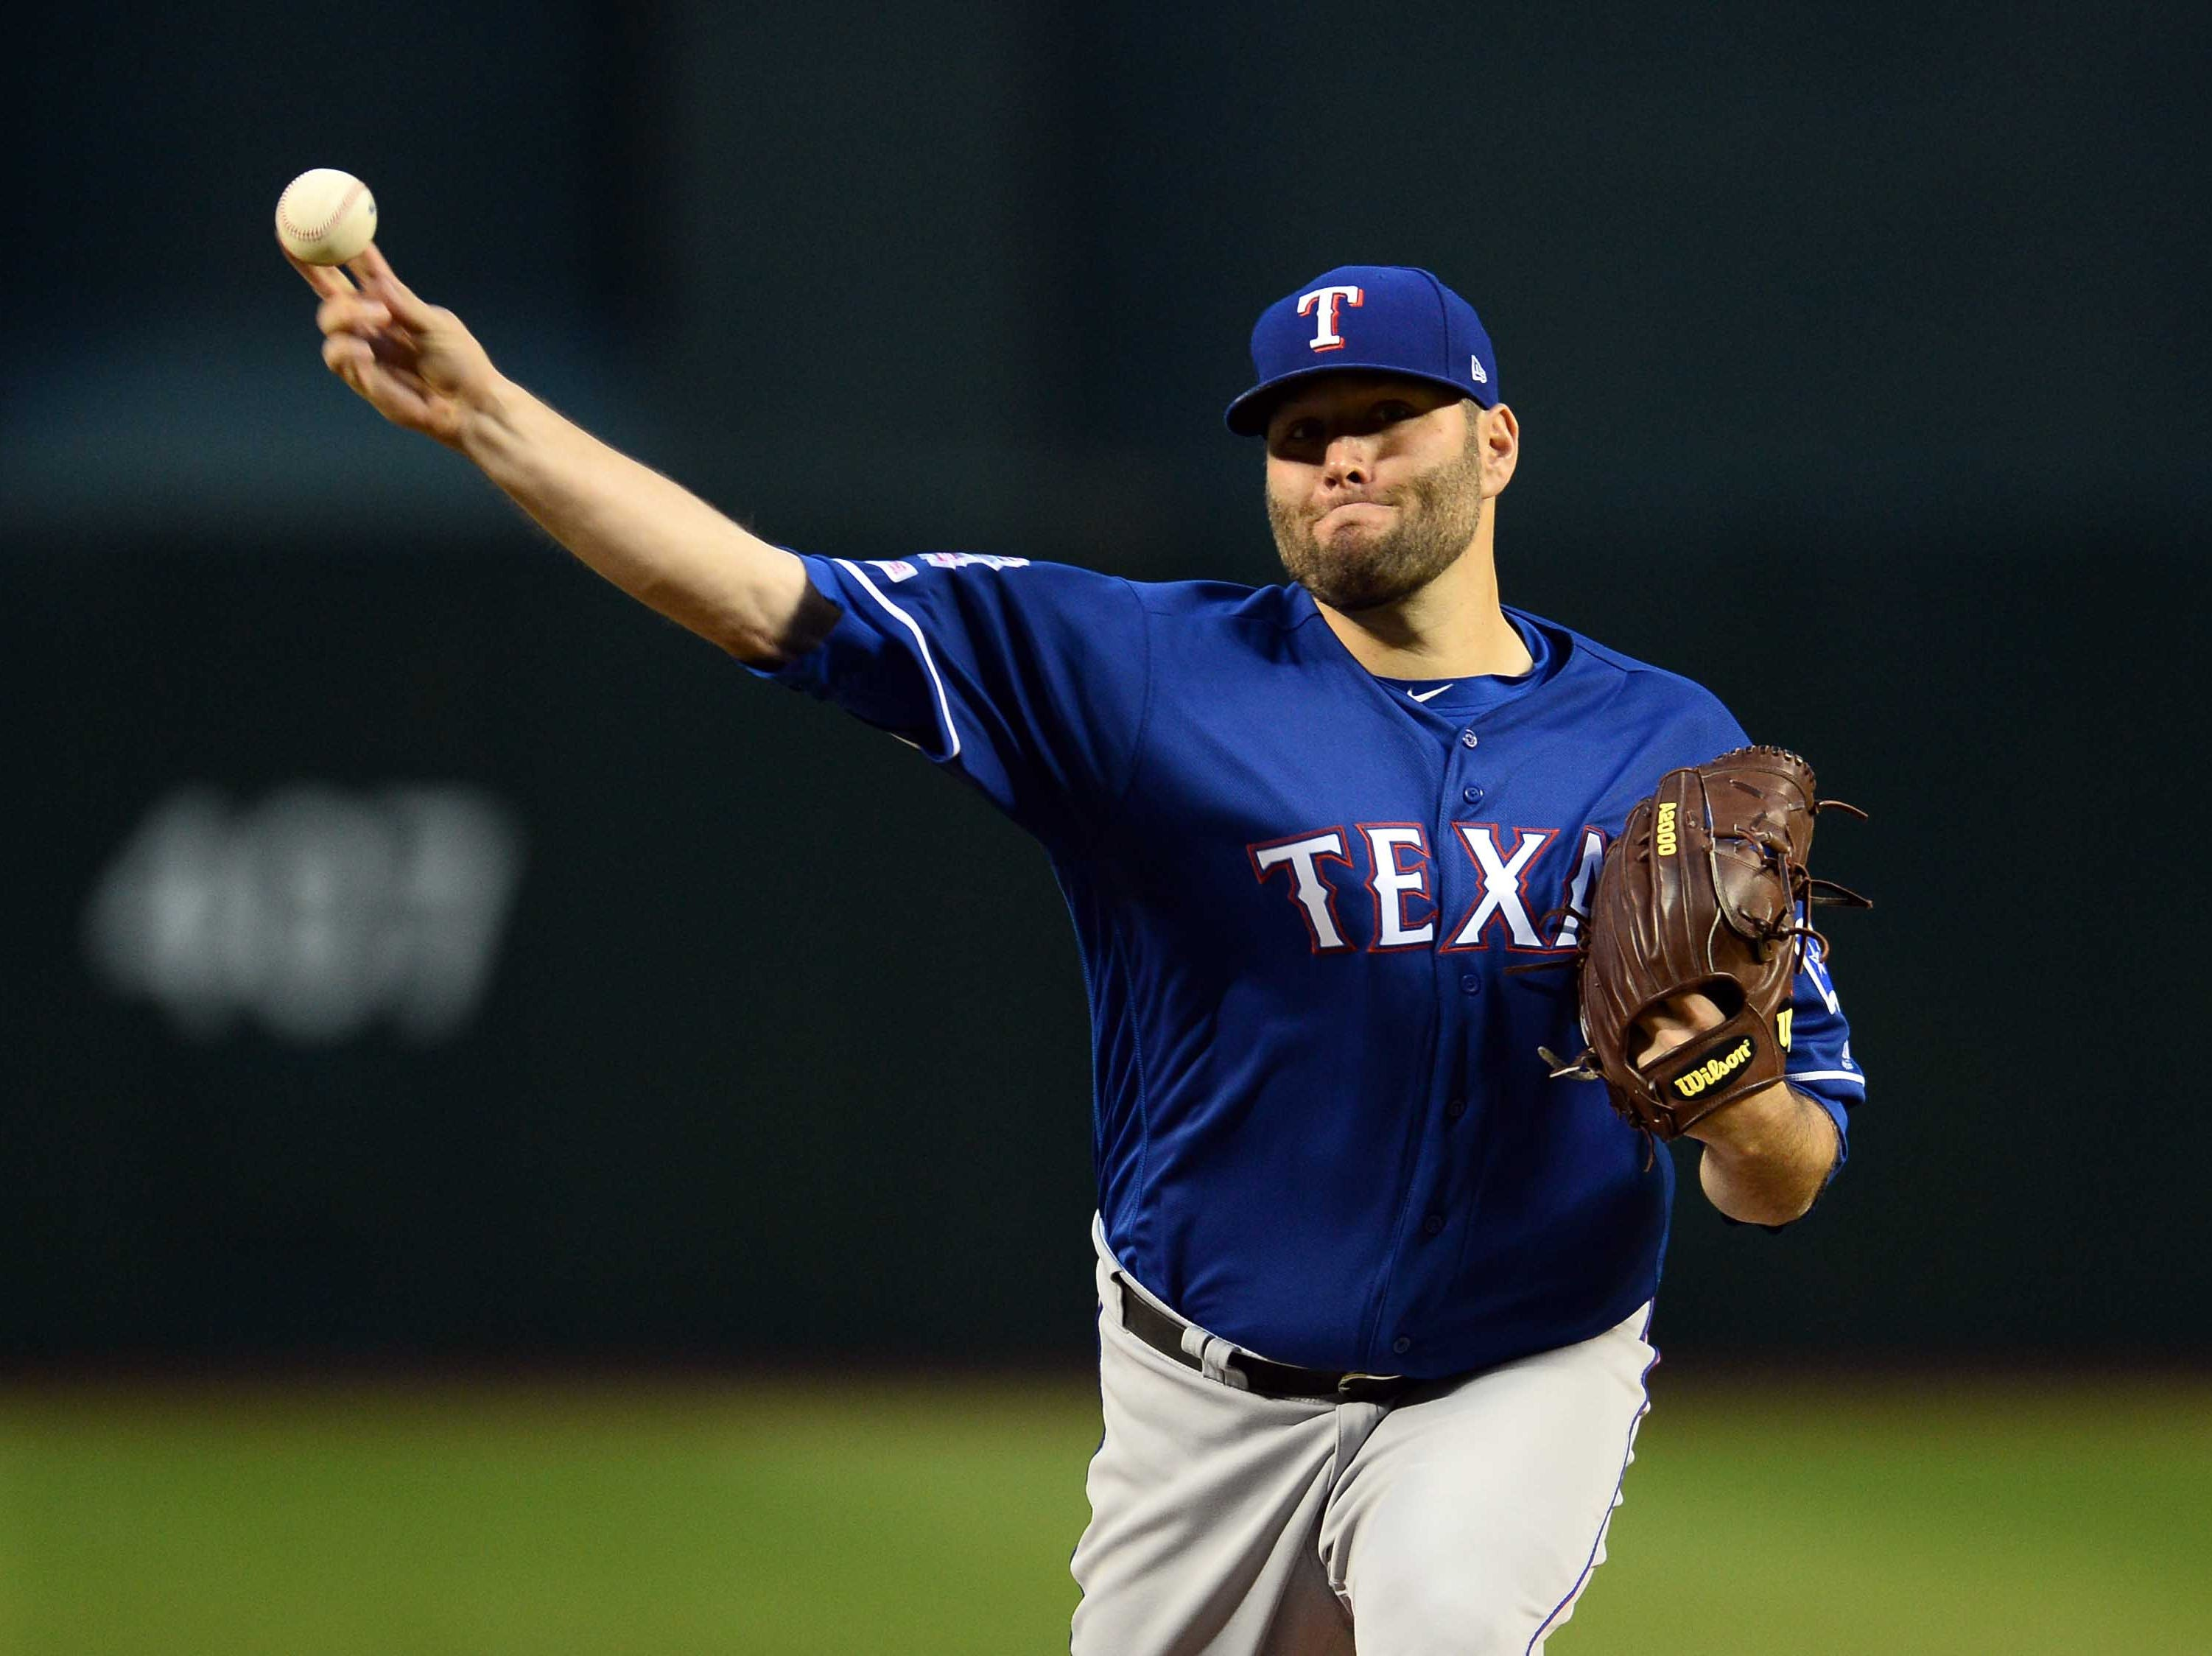 Apr 10, 2019; Phoenix, AZ, USA; Texas Rangers starting pitcher Lance Lynn (35) pitches against the Arizona Diamondbacks during the first inning at Chase Field. Mandatory Credit: Joe Camporeale-USA TODAY Sports